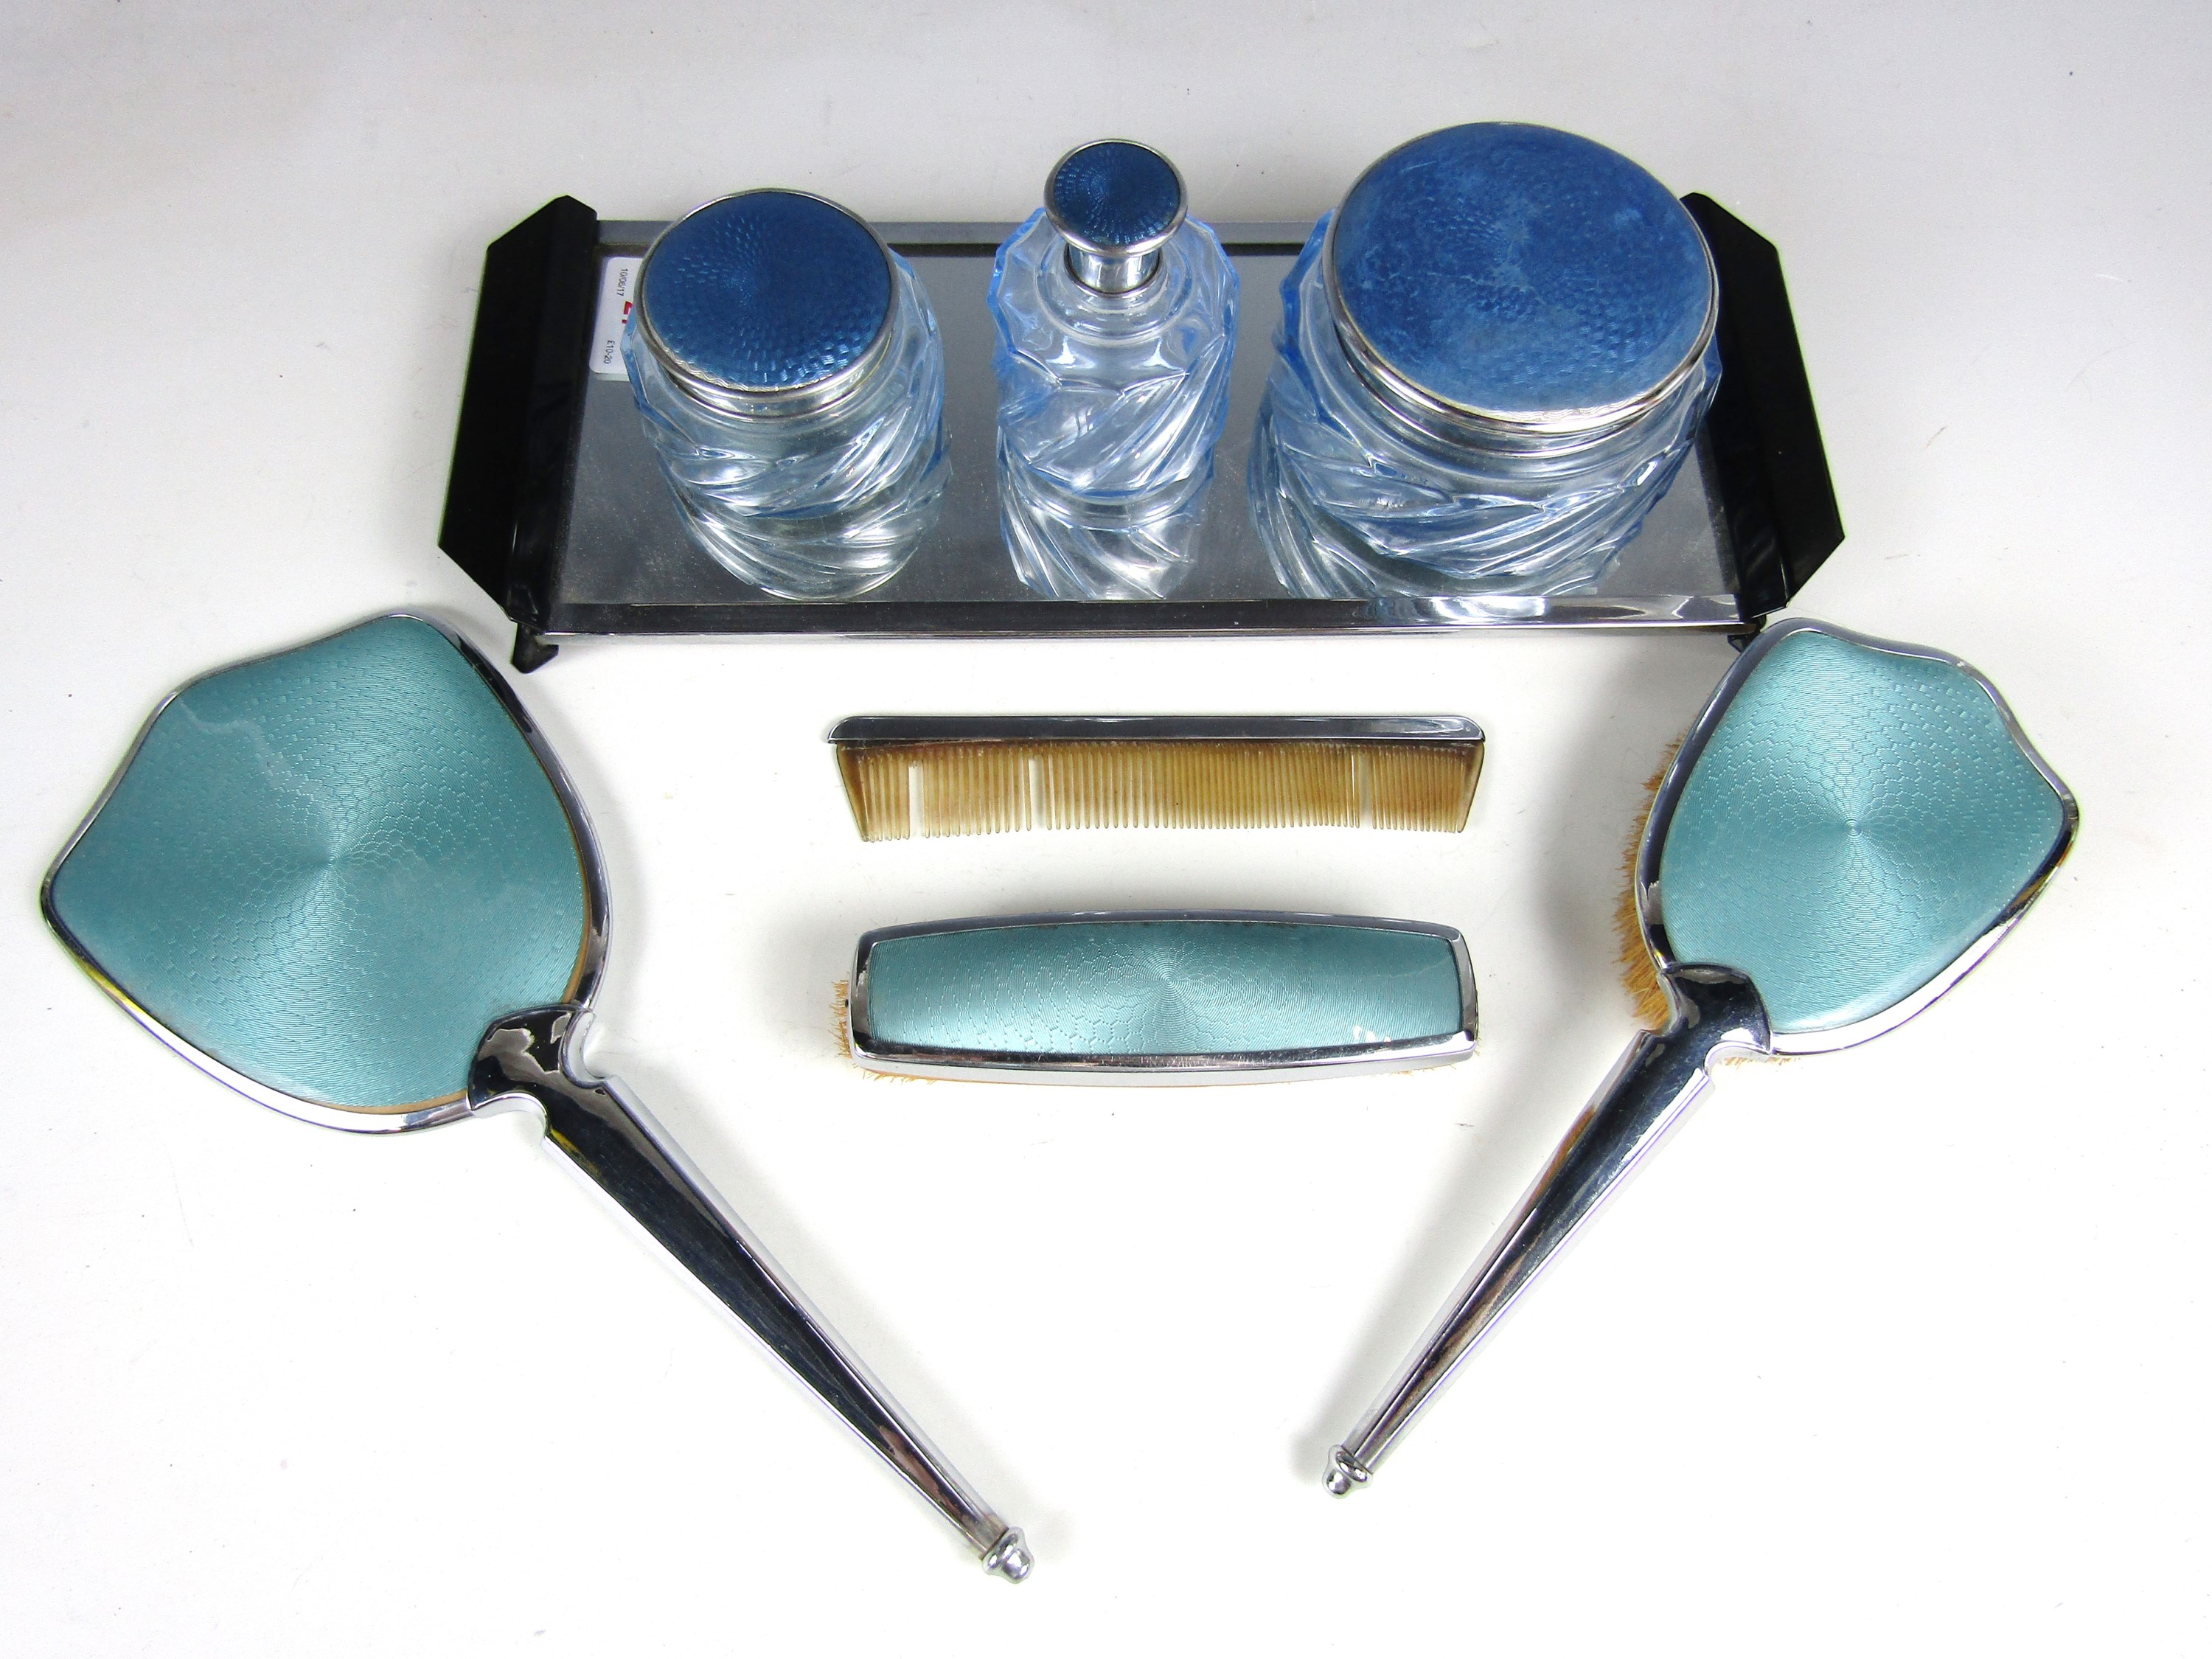 Lot 27 - Vintage dressing table items, including three cosmetic bottles with guilloche engraved and